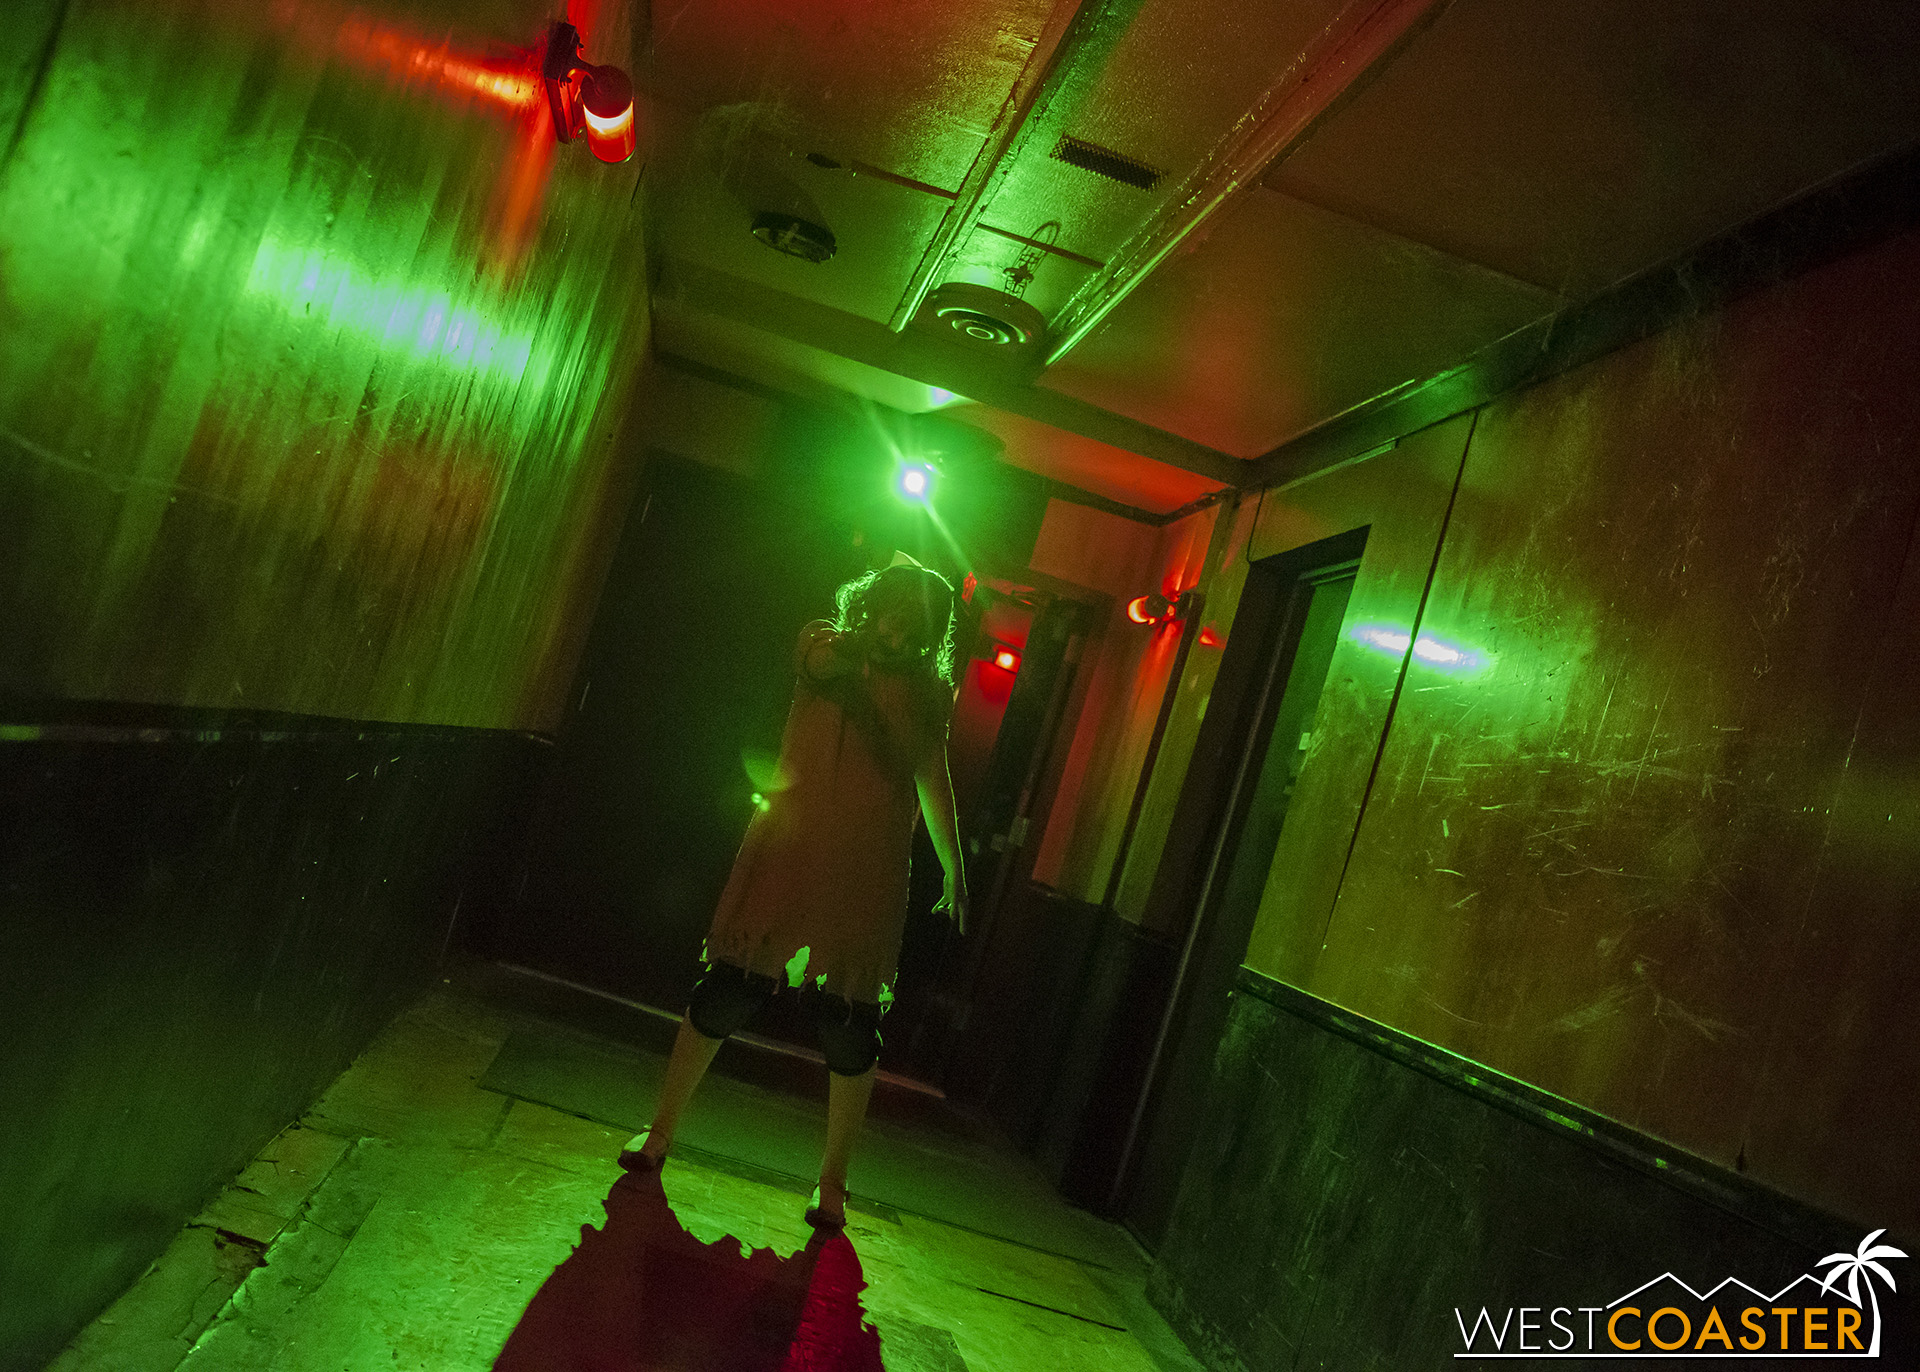 Imagine a ghostly demonic child at the end of a hallway, dimly lit, revealed only by the occasional pulse of a green strobe.